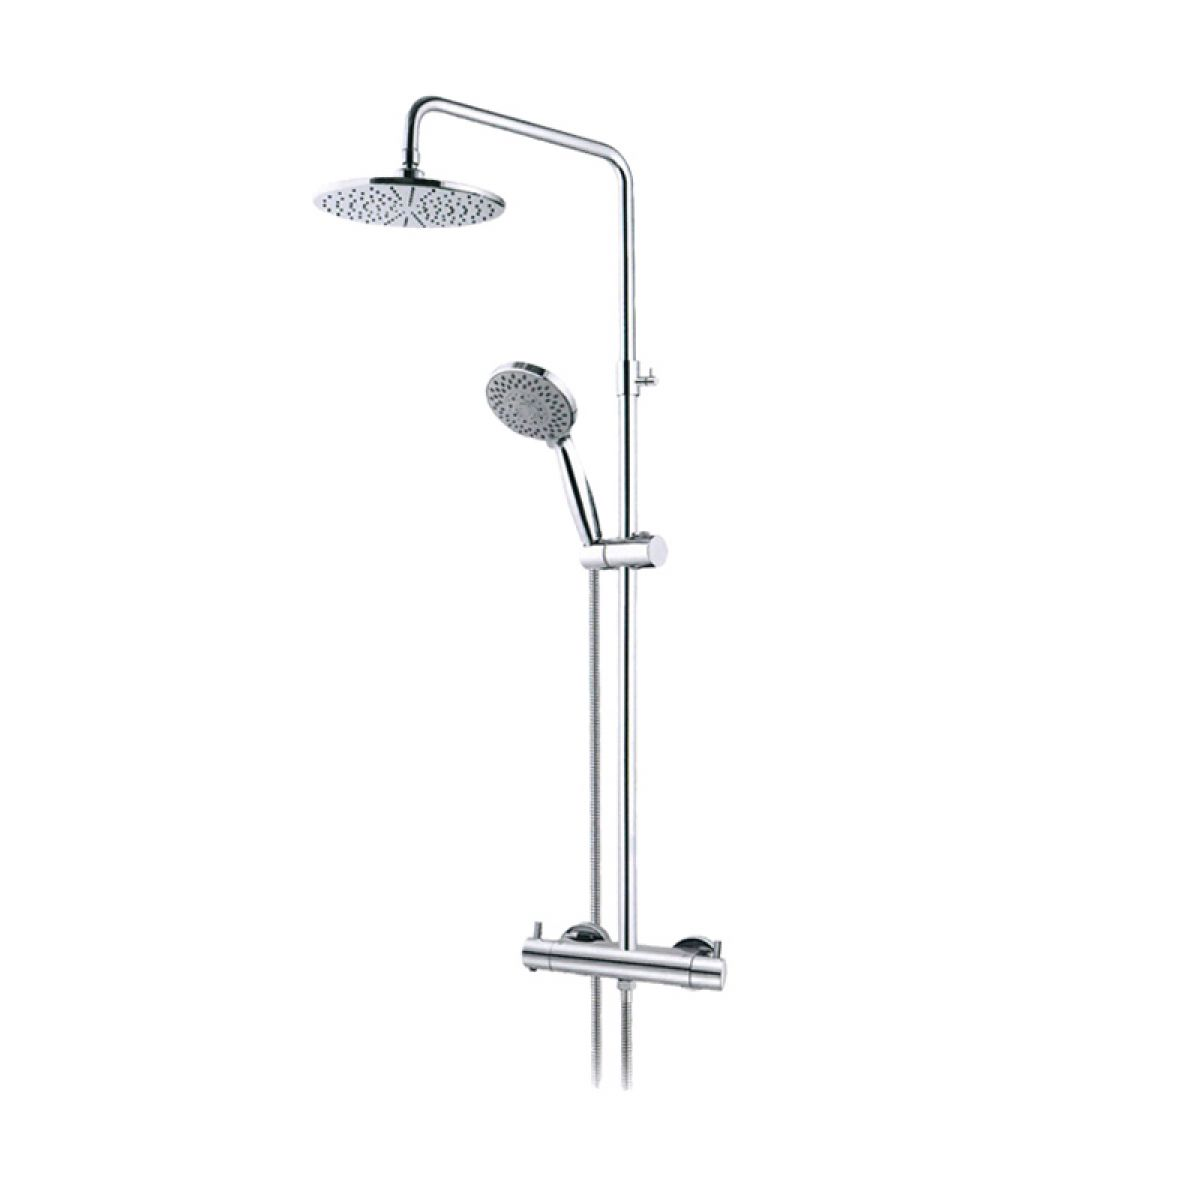 Abacus Emotion Exposed Shower Kit With Overhead Handheld